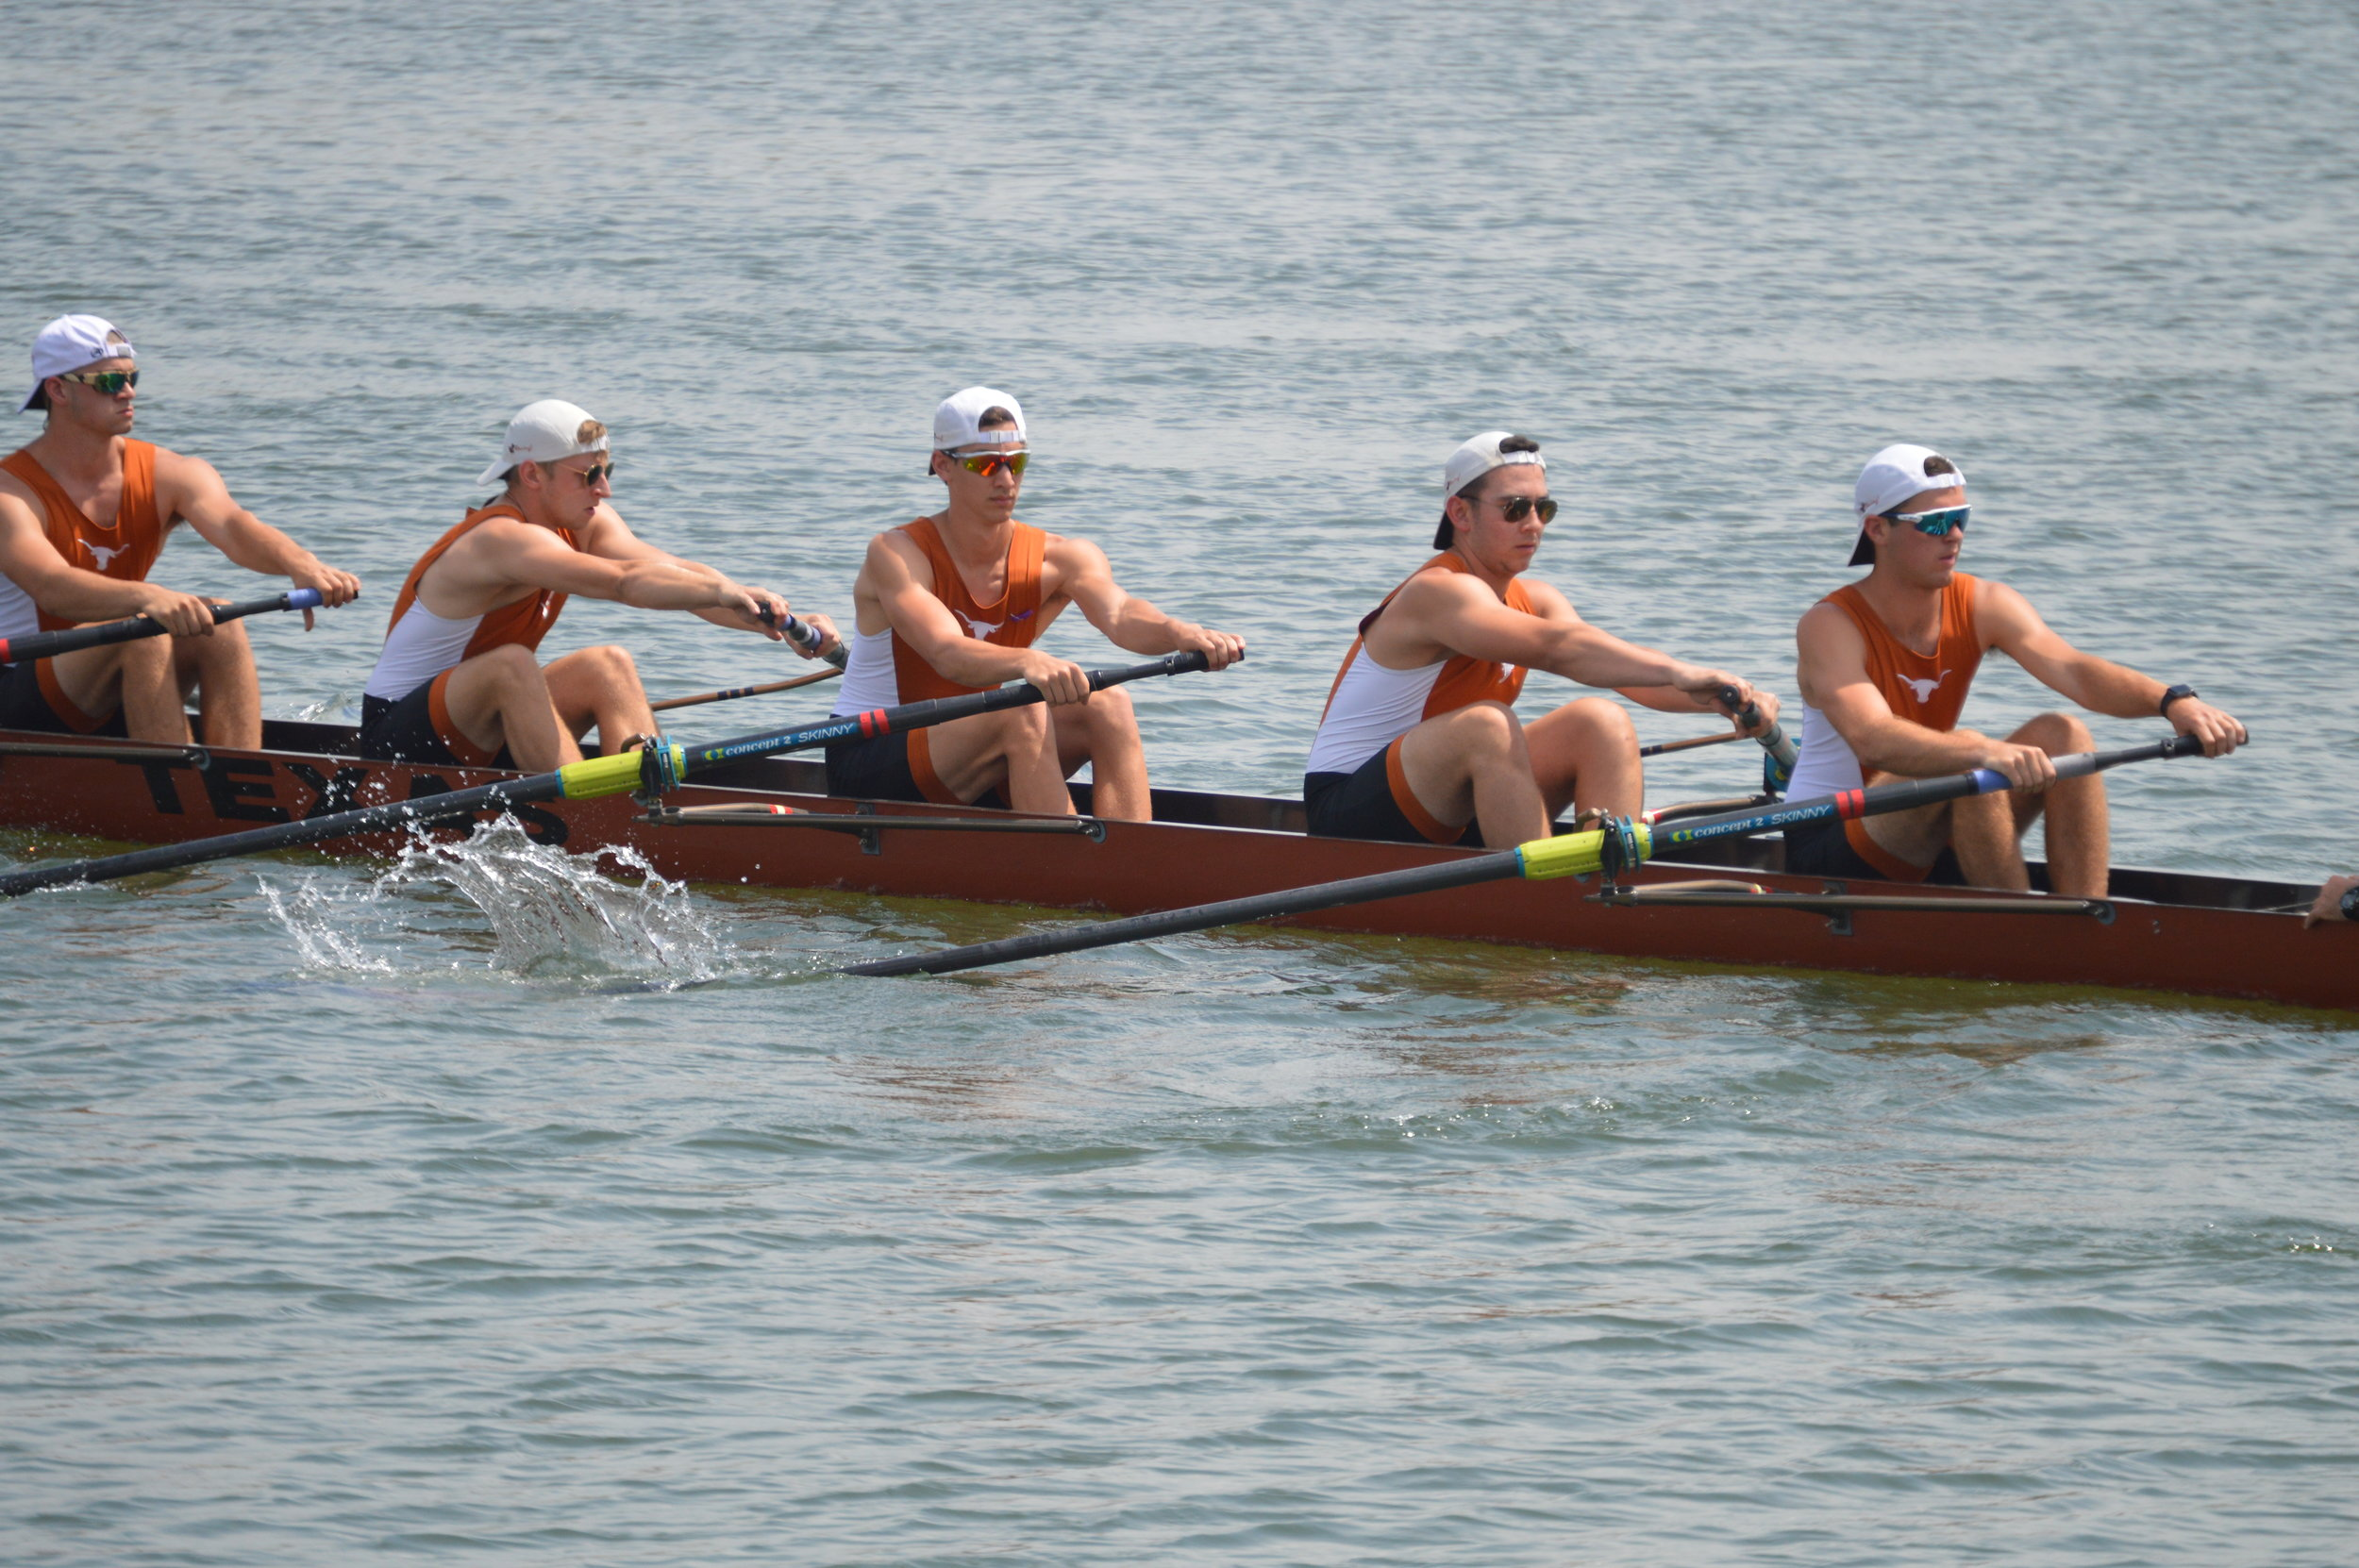 Rowing in Oak Ridge - Oak Ridge has hosted dozens of regattas over the years including several collegiate events like this one in the spring of 2017.